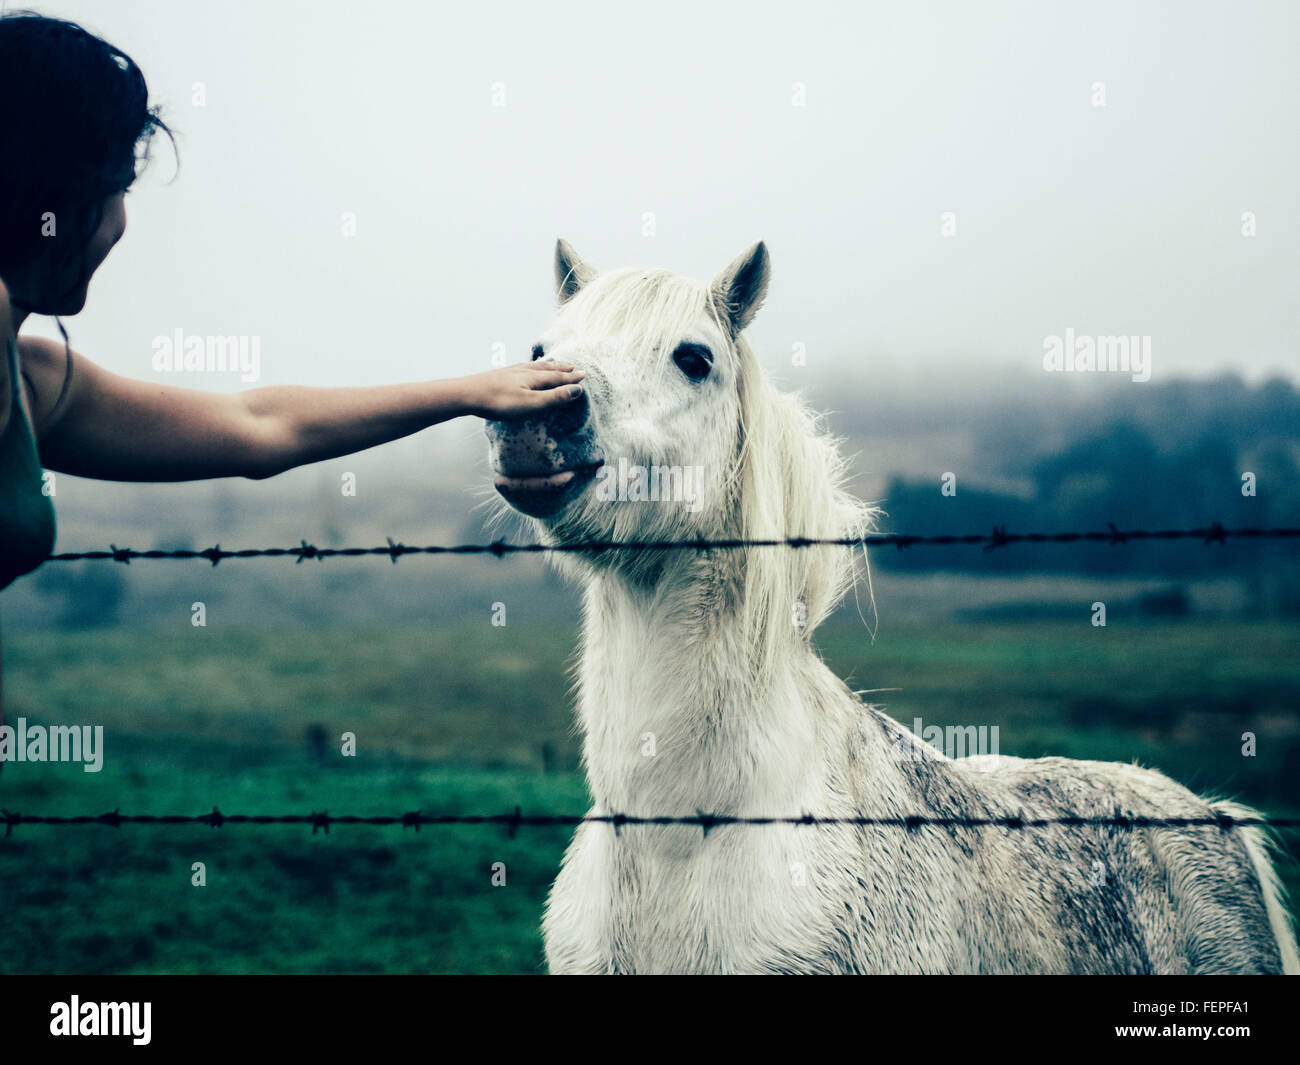 Cropped Hand Touching White Horse In Ranch Against Sky Stock Photo